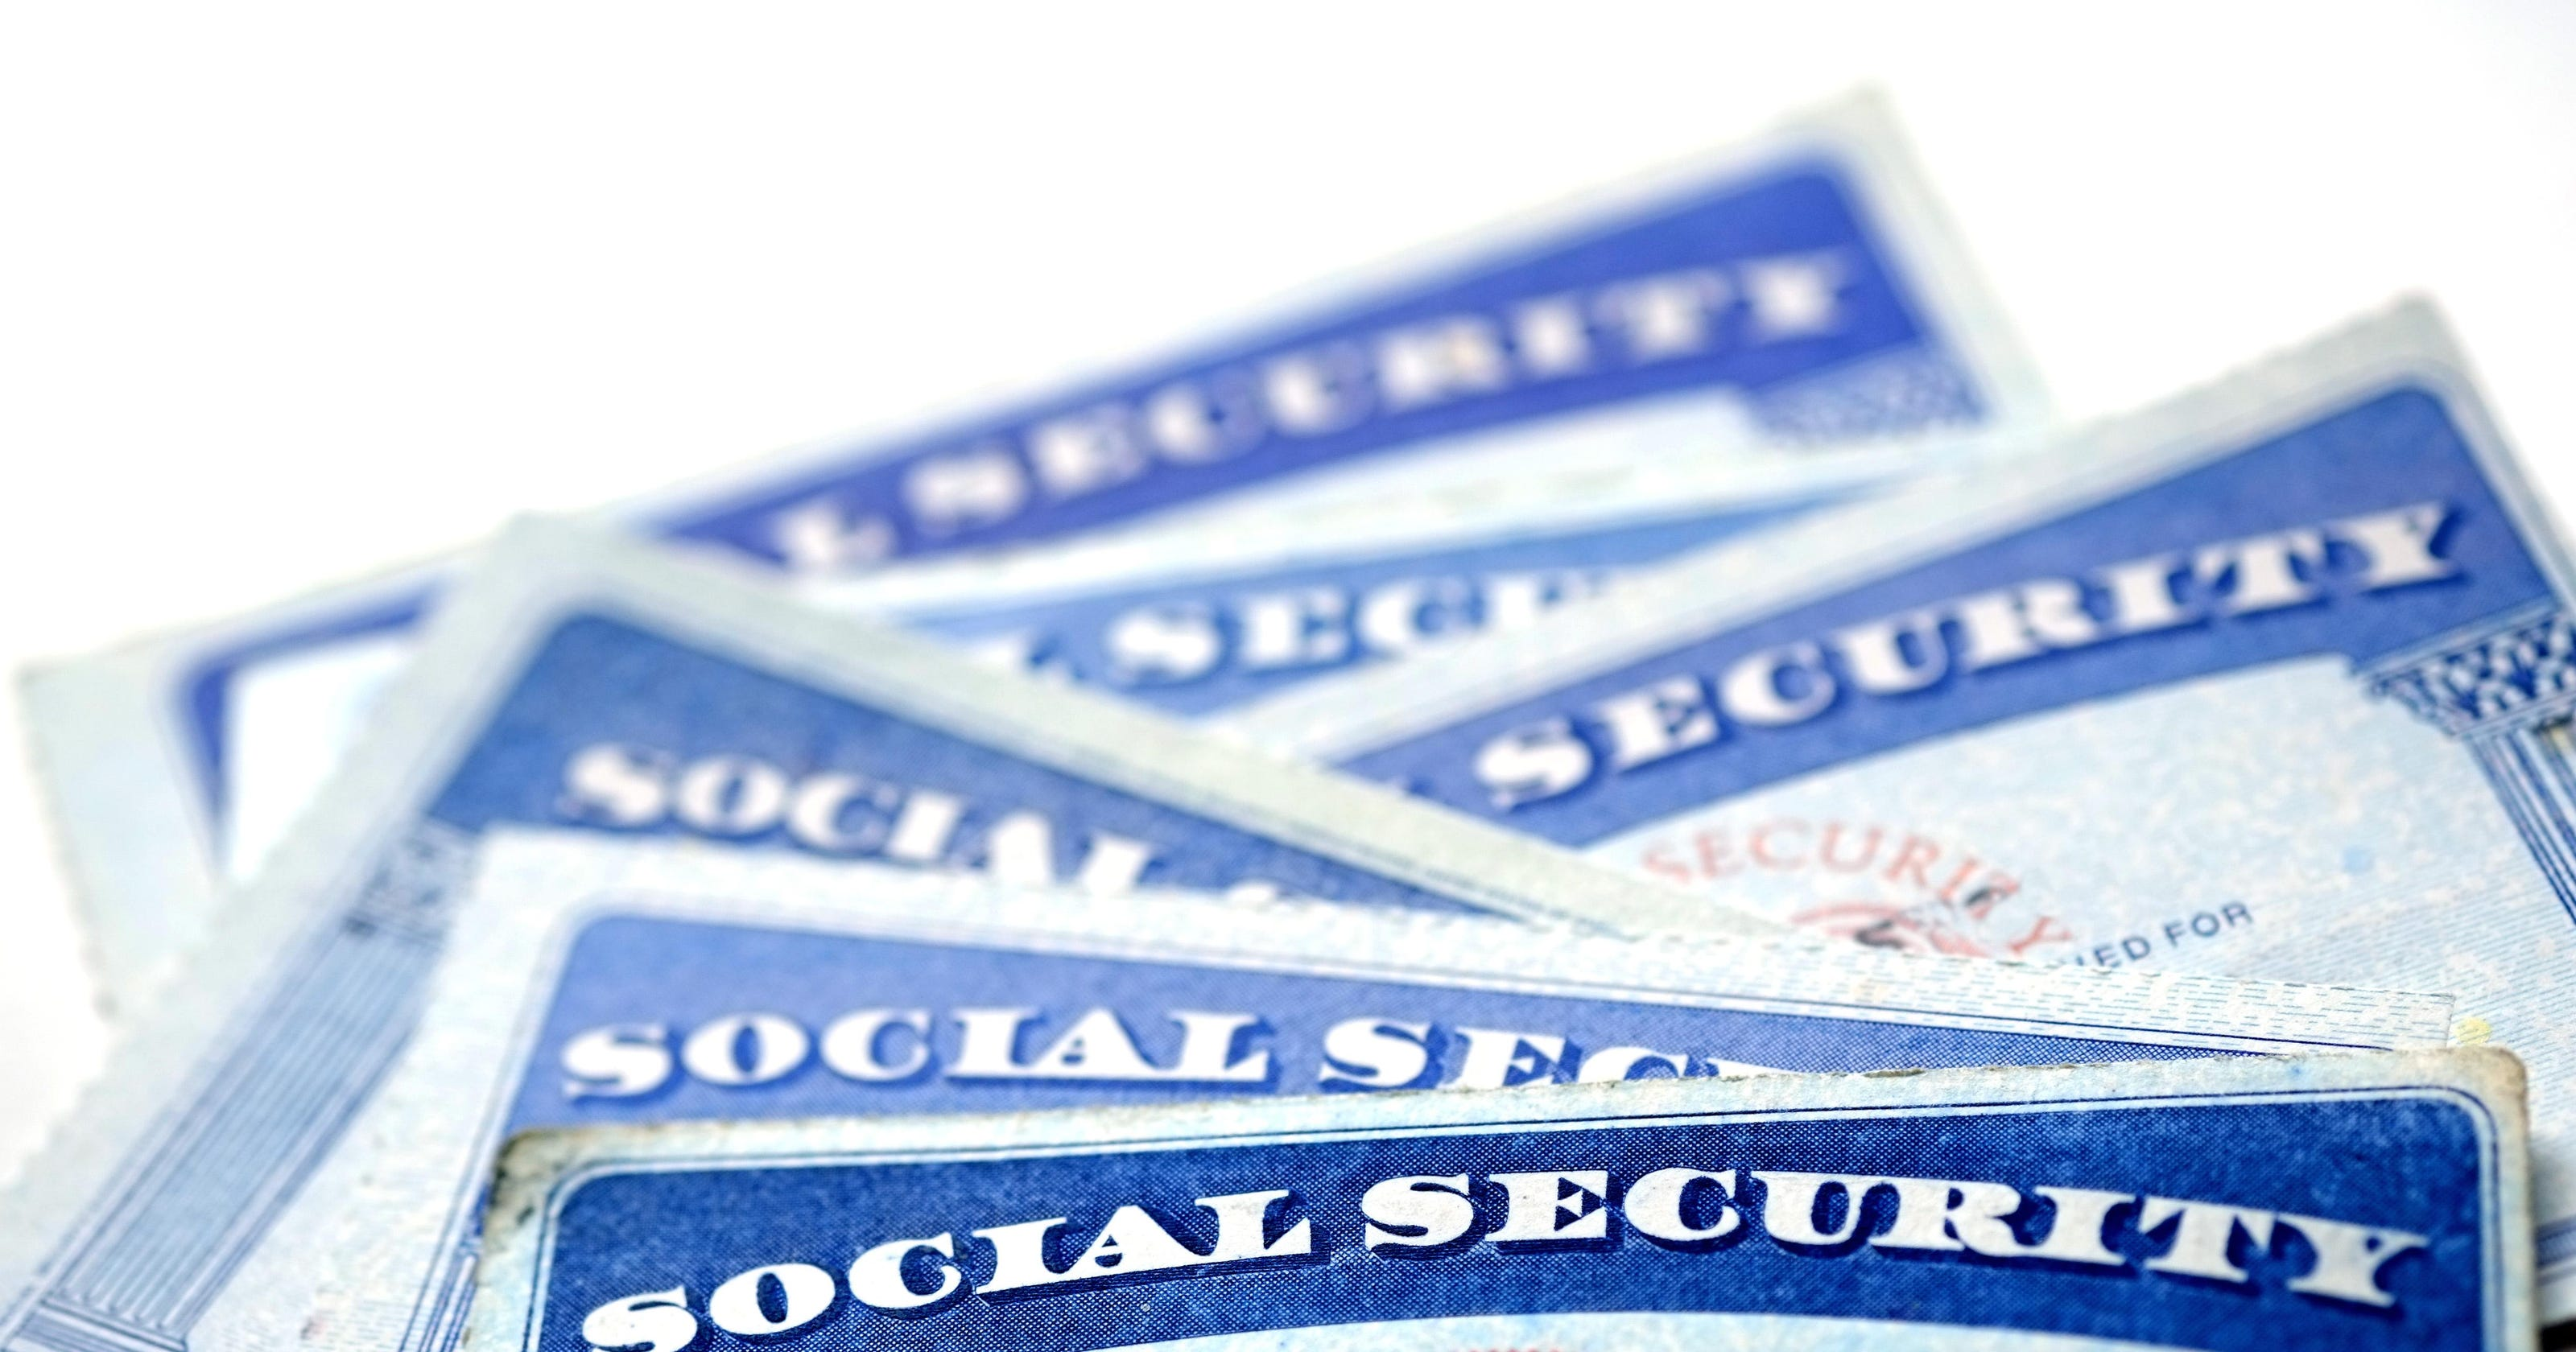 How do I change my citizenship status for Social Security?